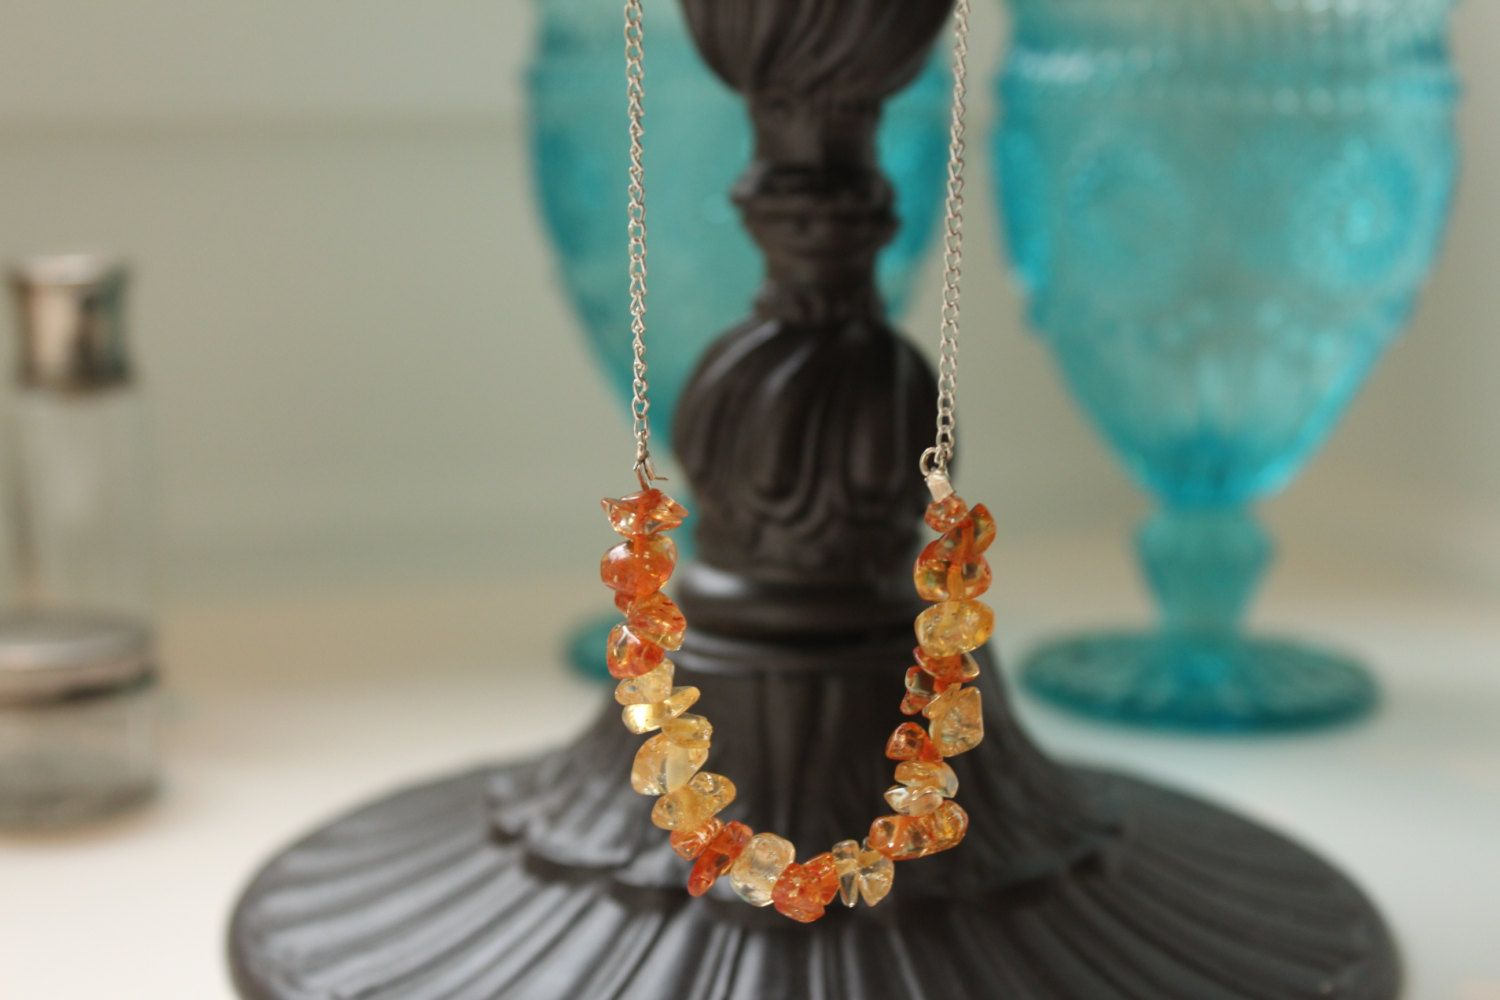 Amber Glass Crackle Mix Beaded 'Rock Candy' Style Necklace with Silver Plated Metal Chain - bright - great gift - Orange Mix. $11.00, via Etsy.